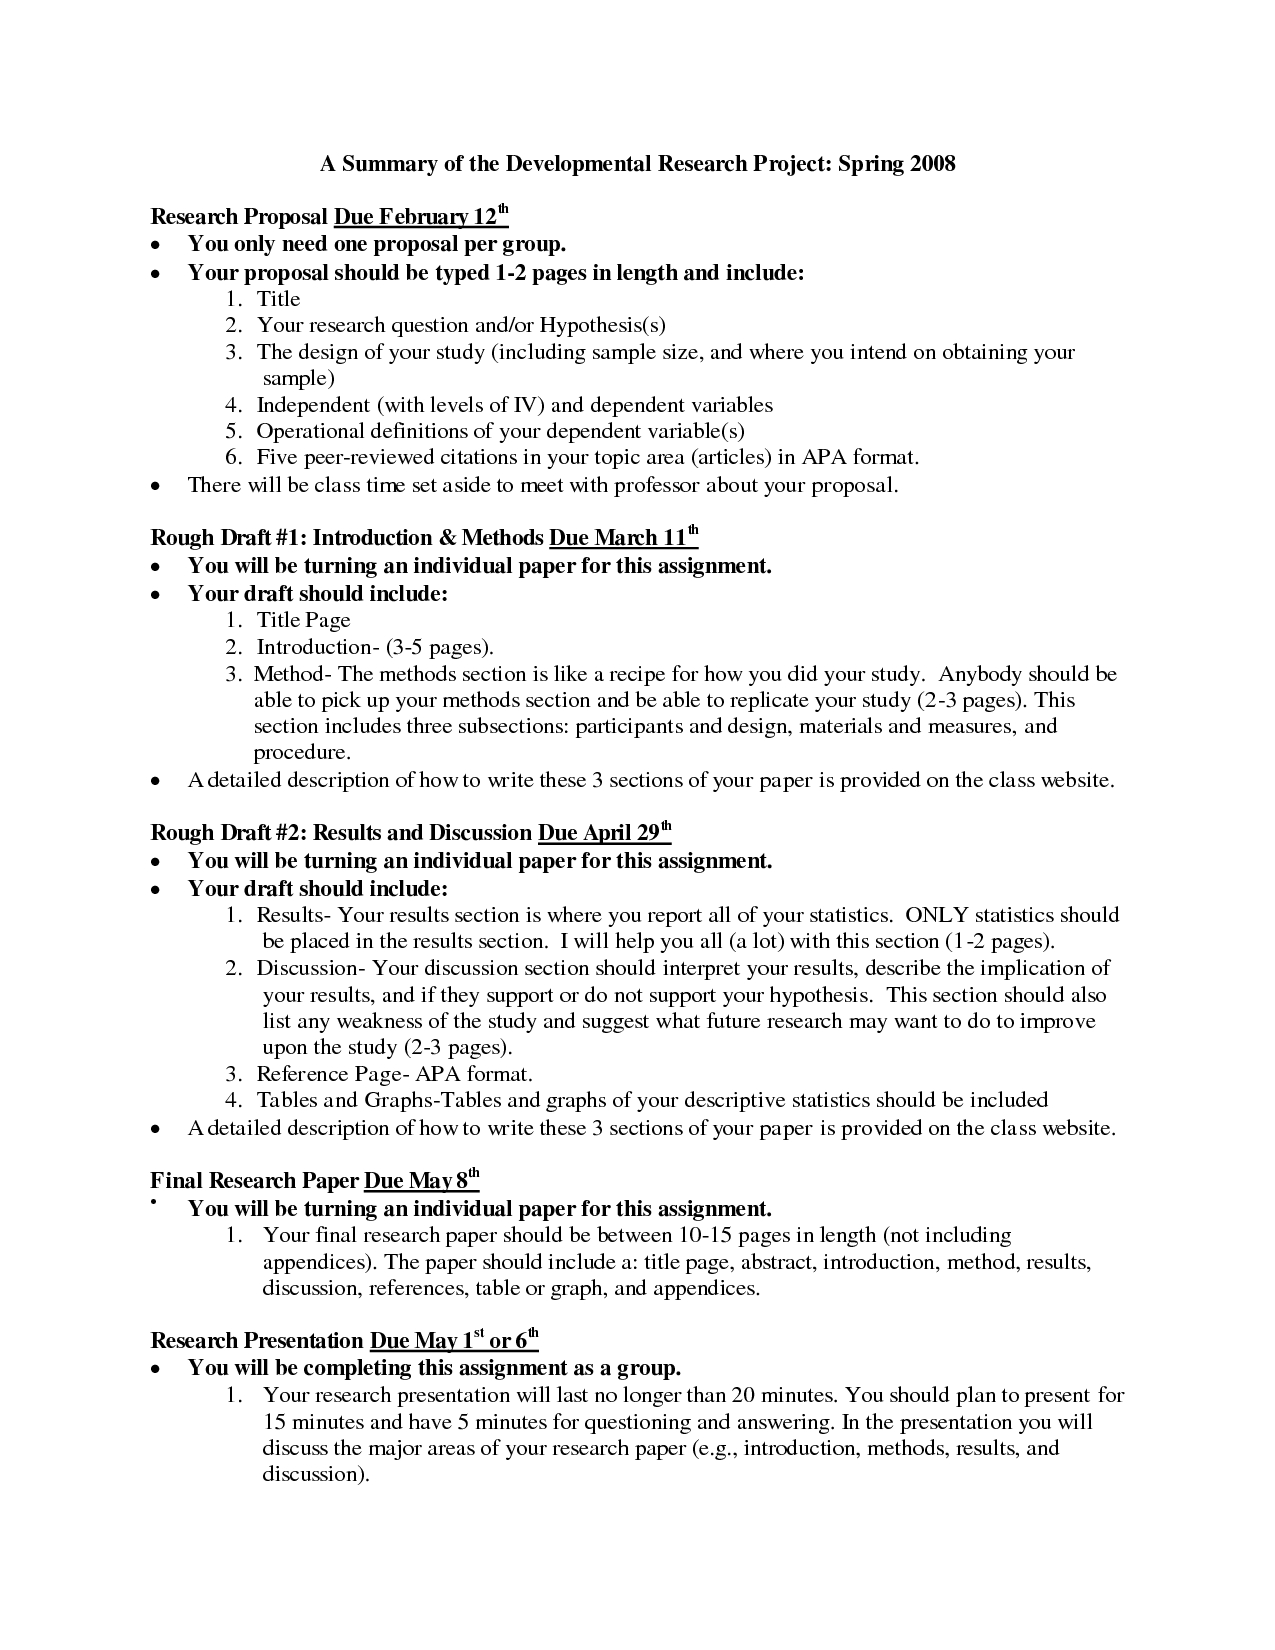 012 Good Research Paper Topic Psychology Undergraduate Resume Unique Sample Singular Topics About Sports For Sociology High School Students In The Philippines Full